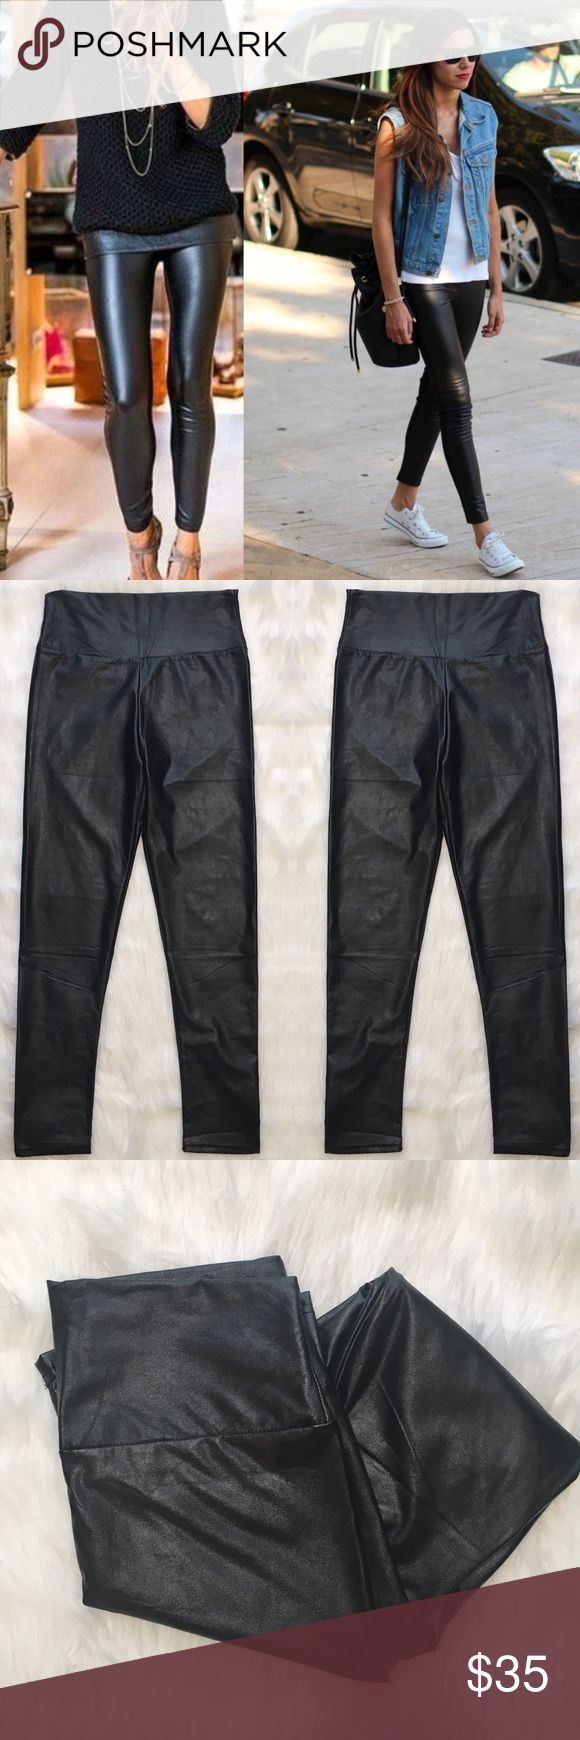 Liquid Leggings The leather look while being eco friendly. Fleece lined. Worn once and just decided they weren't my stile. In excellent used condition. Measurements only by request. Very Stretchy! jon & anna Pants Leggings